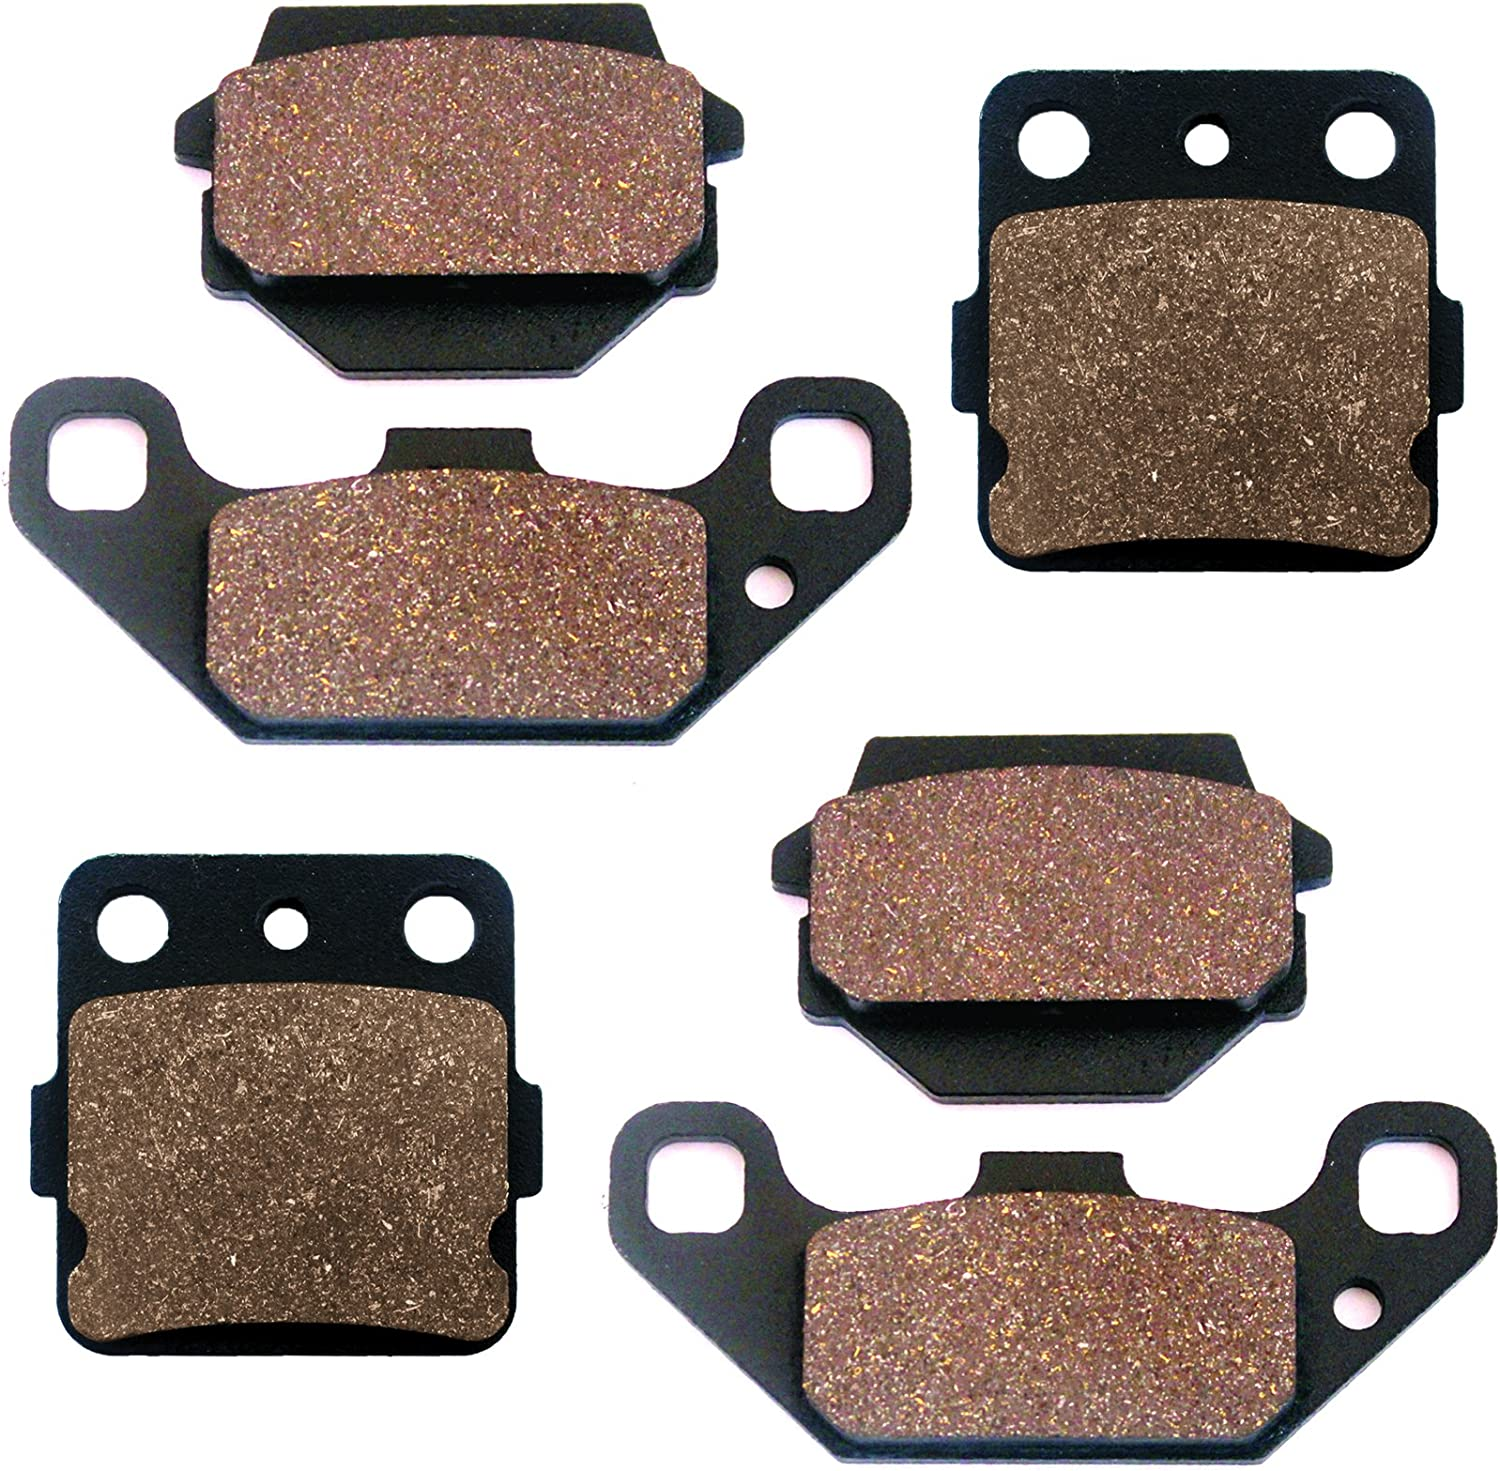 Front Brake Pads For Suzuki LT230S Quadsport 230 1985 1986 1987 1988